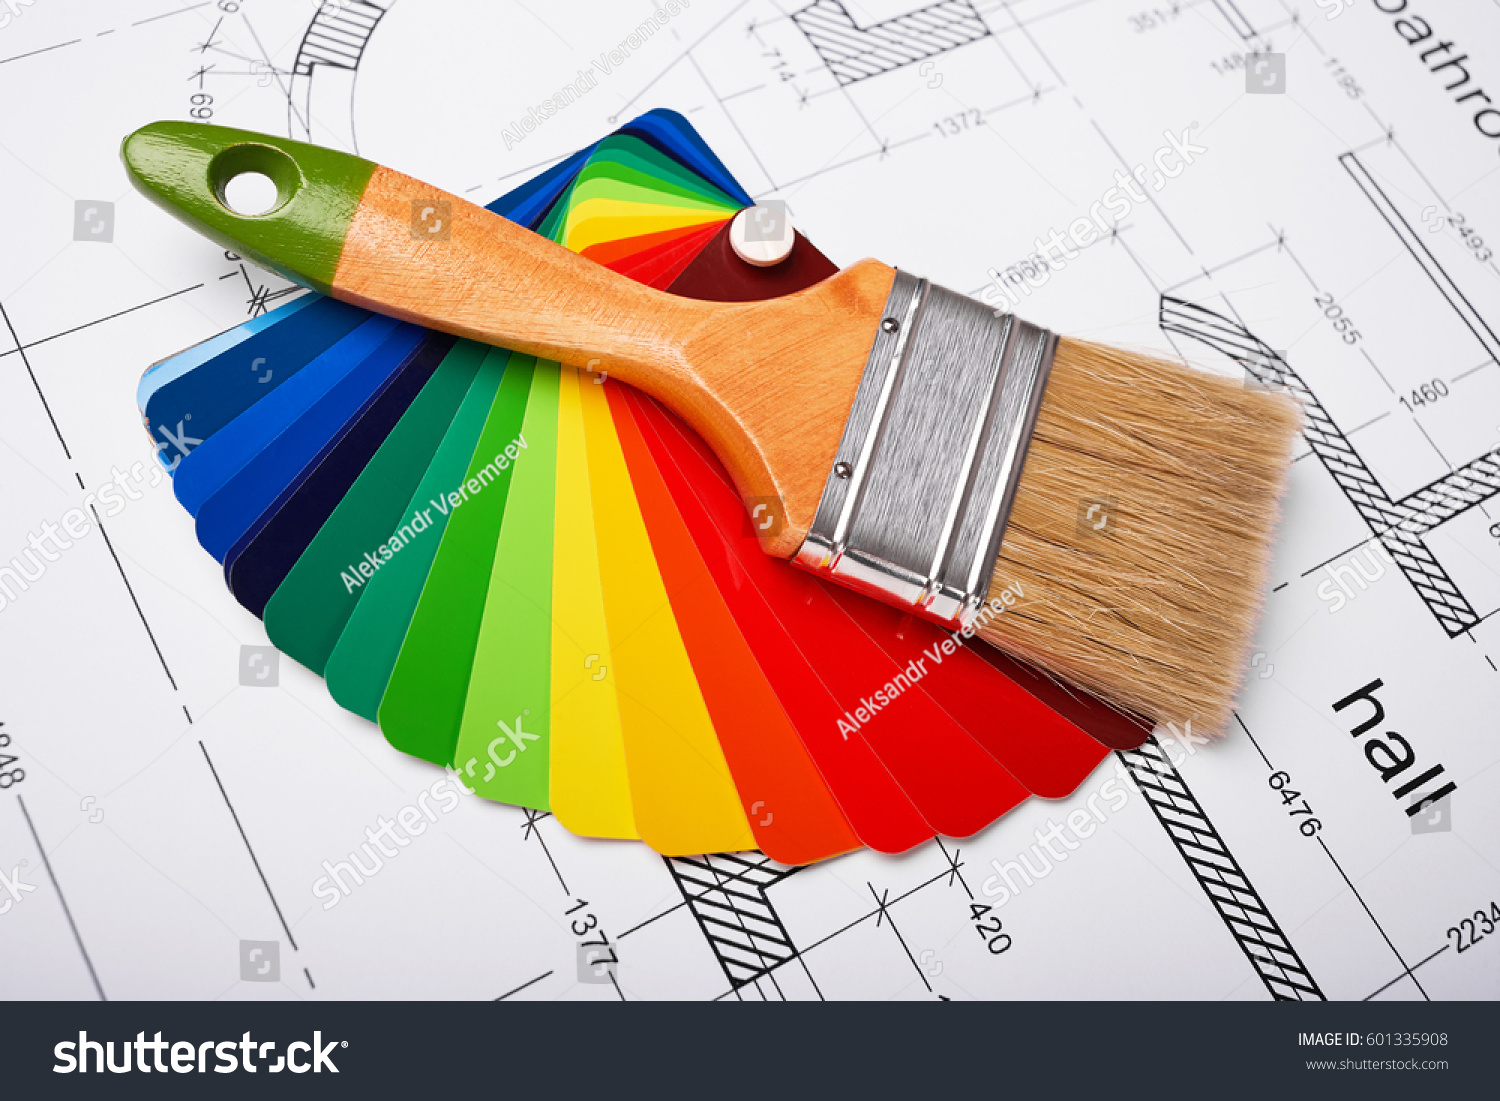 Construction building layout building drawing on stock for Paint planner